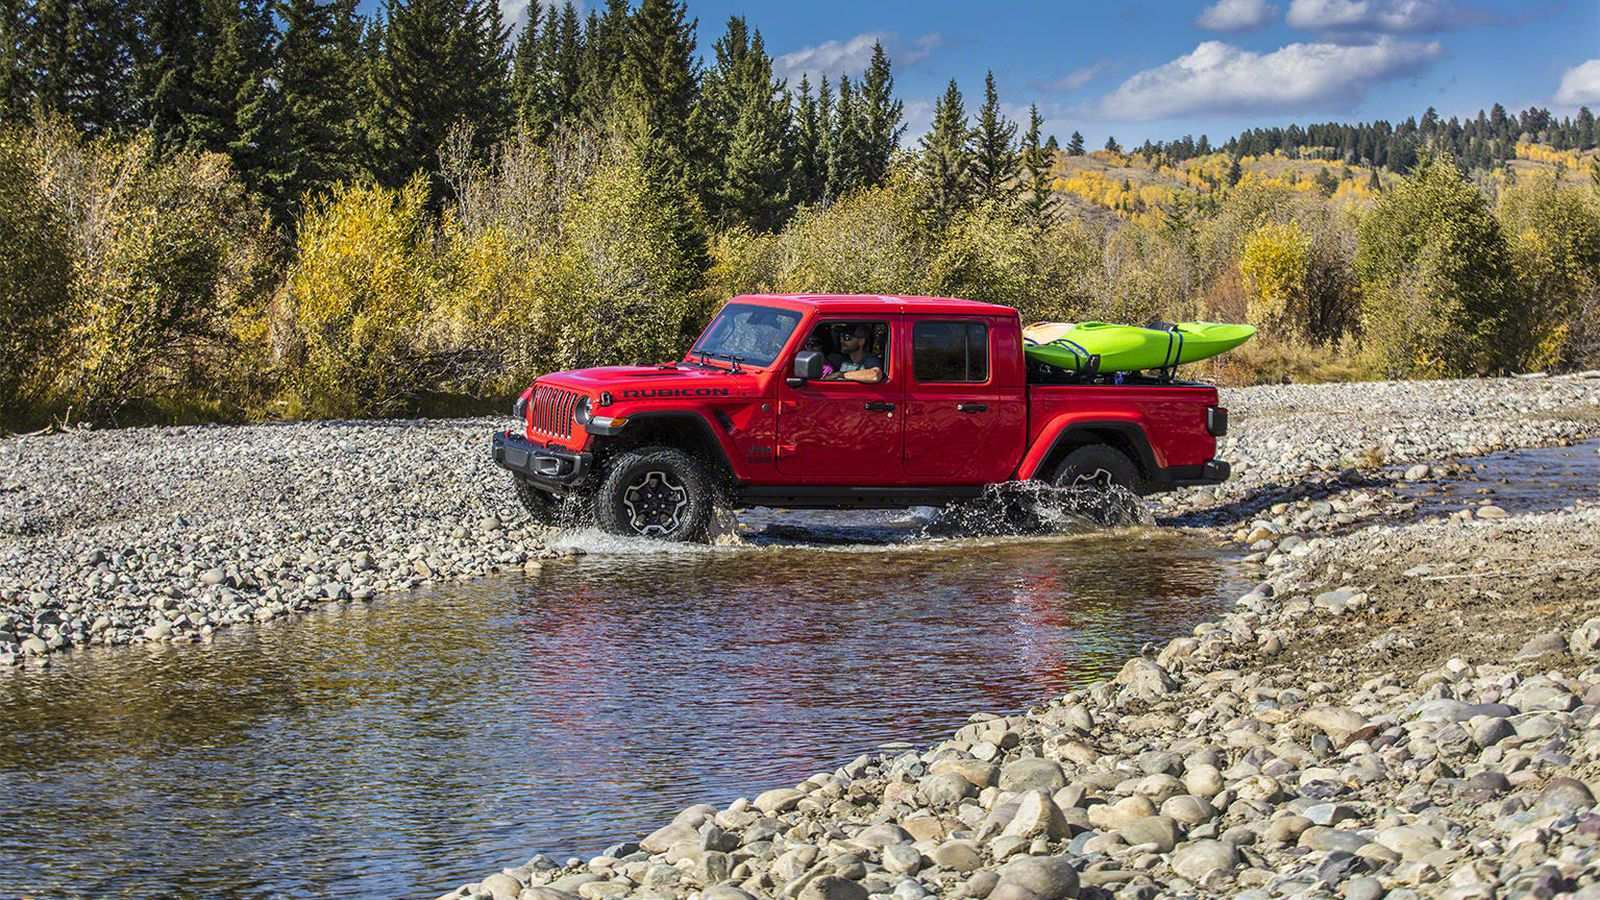 39 New 2020 Jeep Gladiator Vs Toyota Tacoma Rumors